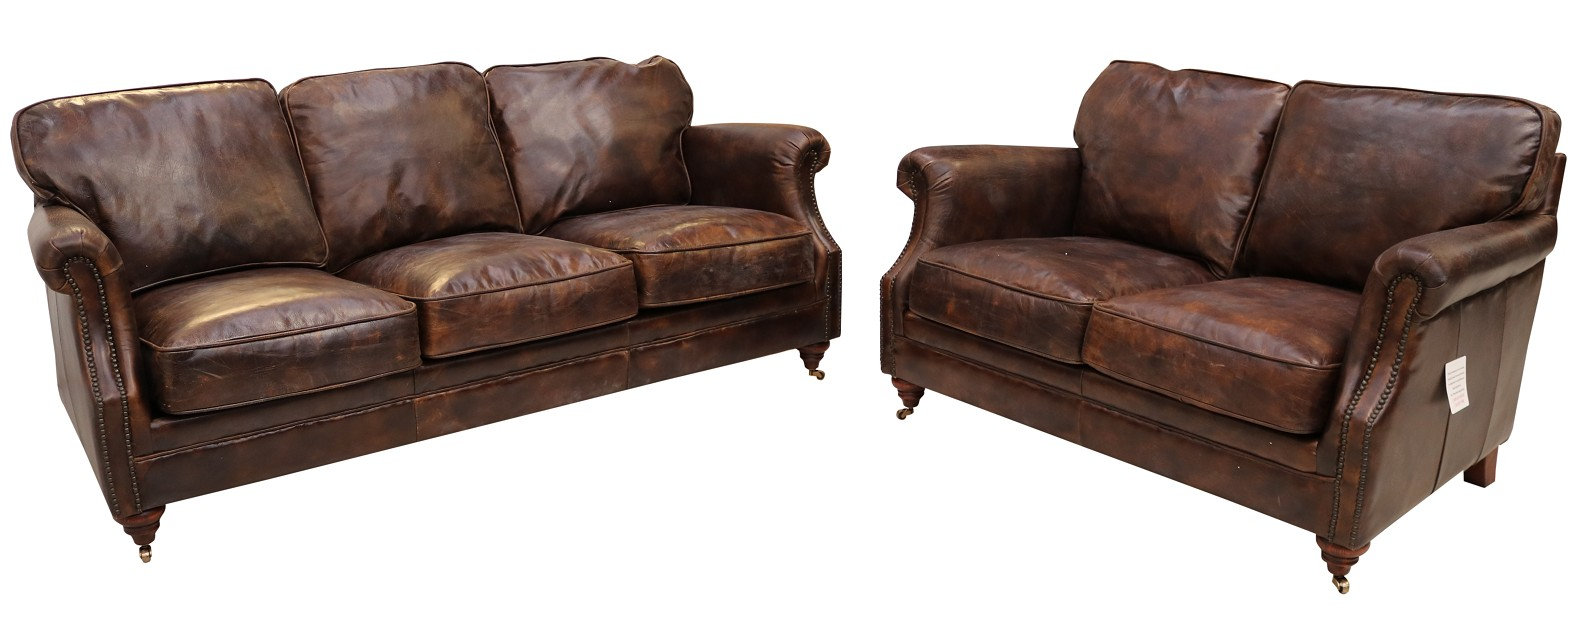 Enjoyable Luxury Vintage Distressed Leather 3 2 Seater Settee Sofa Suite Tobacco Brown Pdpeps Interior Chair Design Pdpepsorg